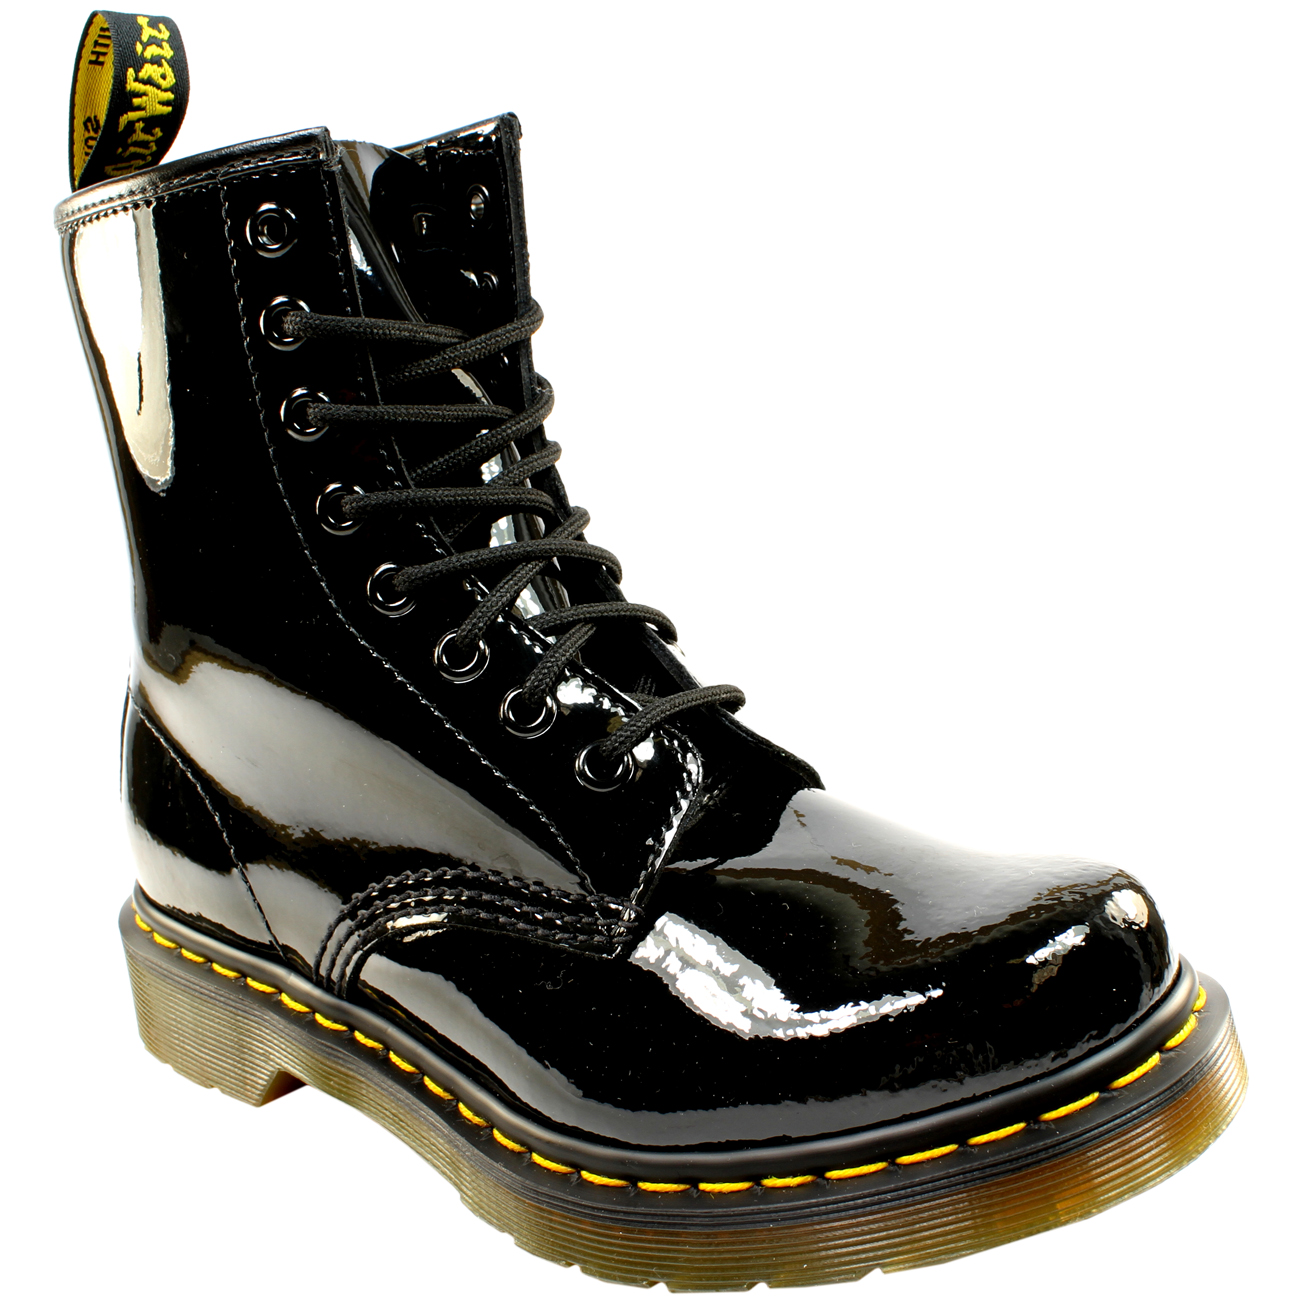 351d5c39a Ladies Dr Martens 1460 W 8 Eyelet Patent Lamper Military Lace Up ...